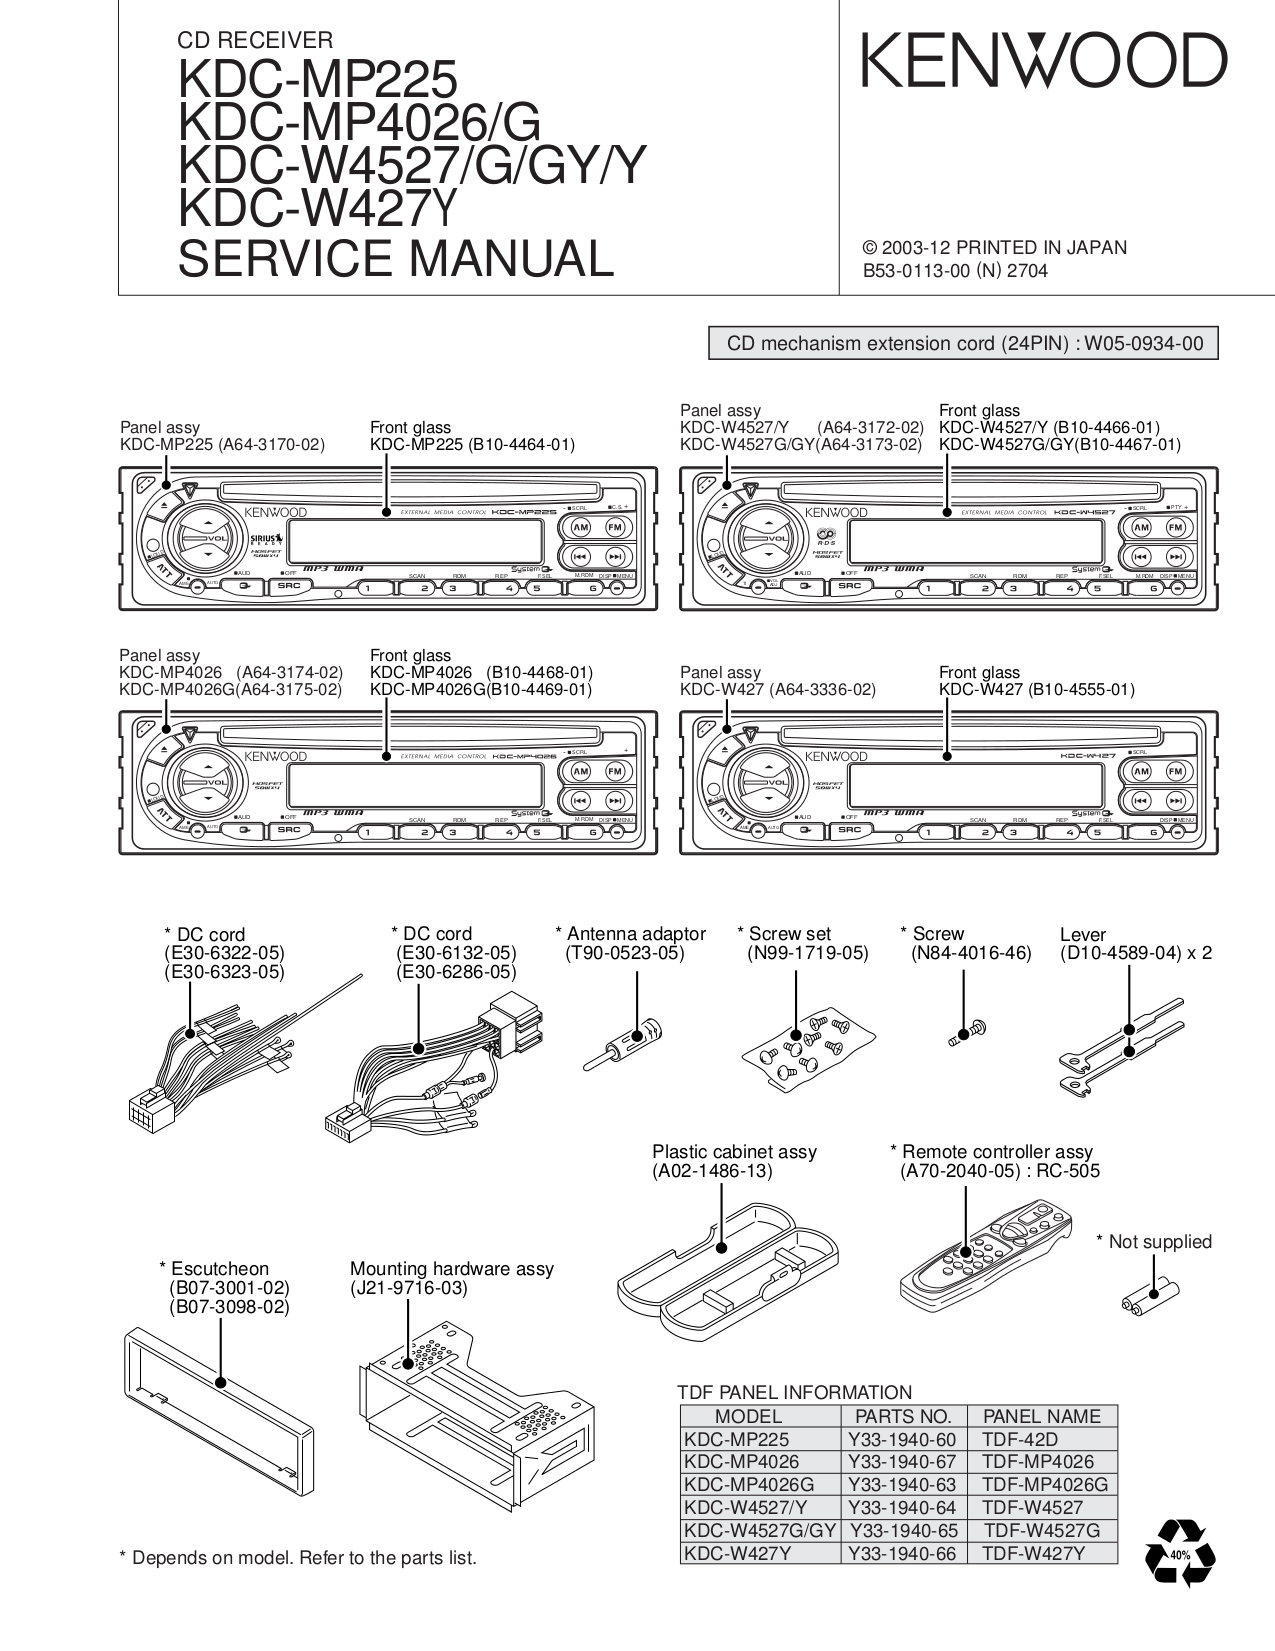 Kenwood_KDC W42.pdf 0 download free pdf for kenwood kdc 148 car receiver manual kenwood kdc 3035 wiring diagram at n-0.co